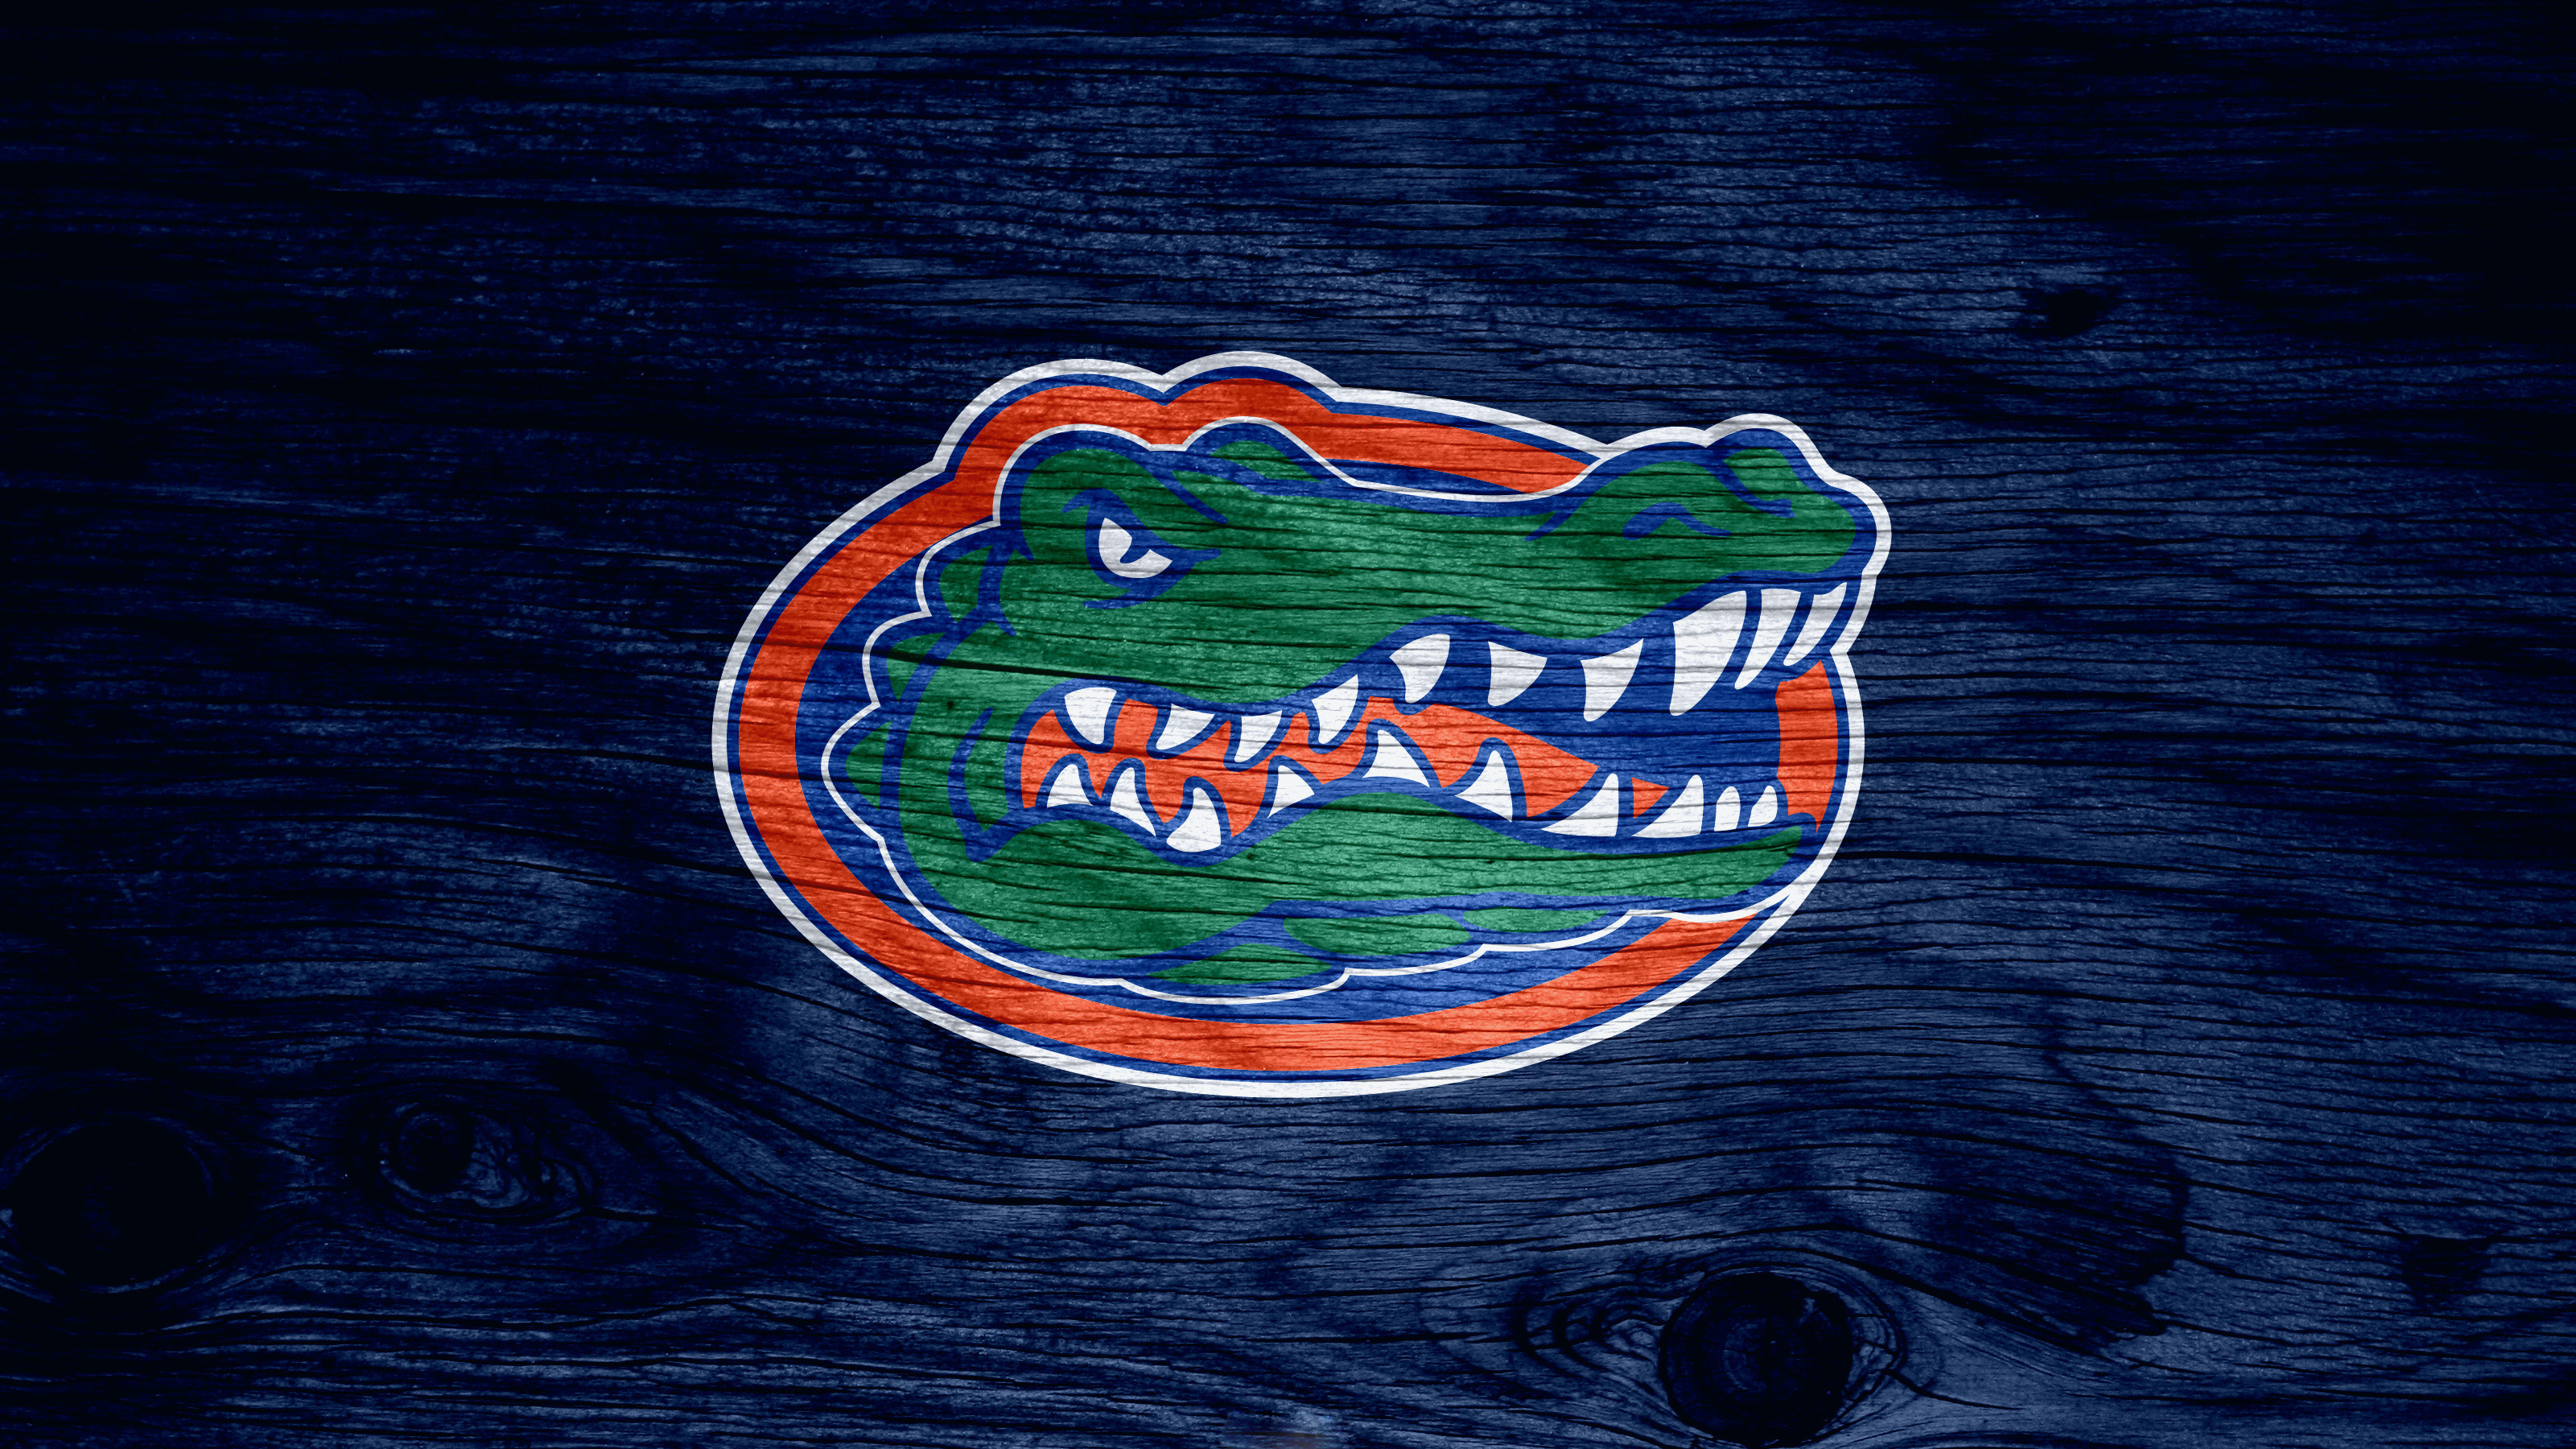 College Football Wallpapers Hd Florida Gators Wallpapers 70 Images